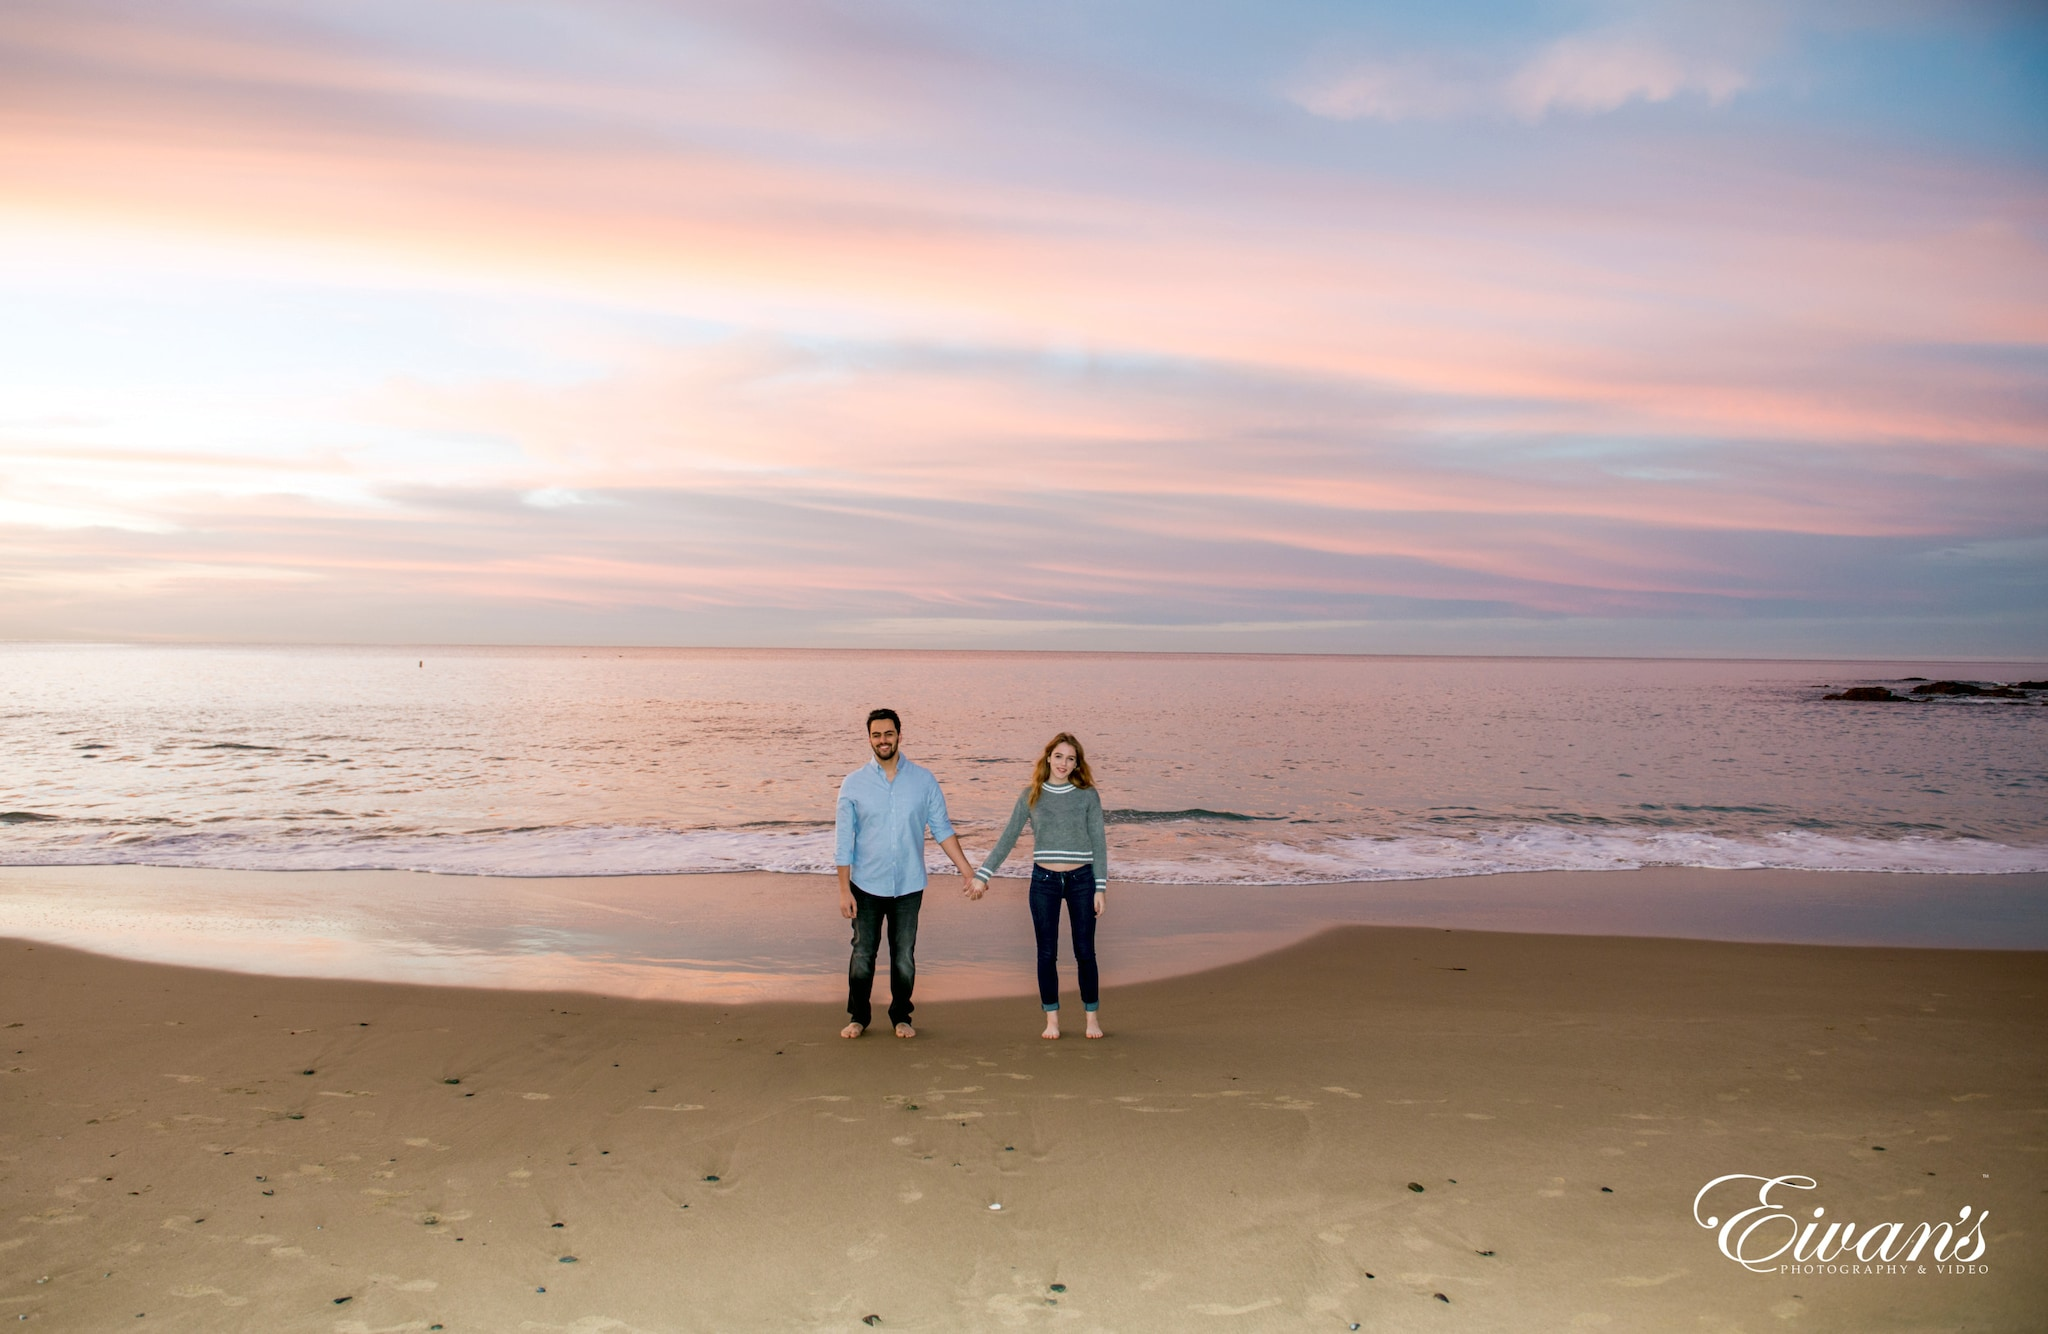 man and woman standing on beach during sunset